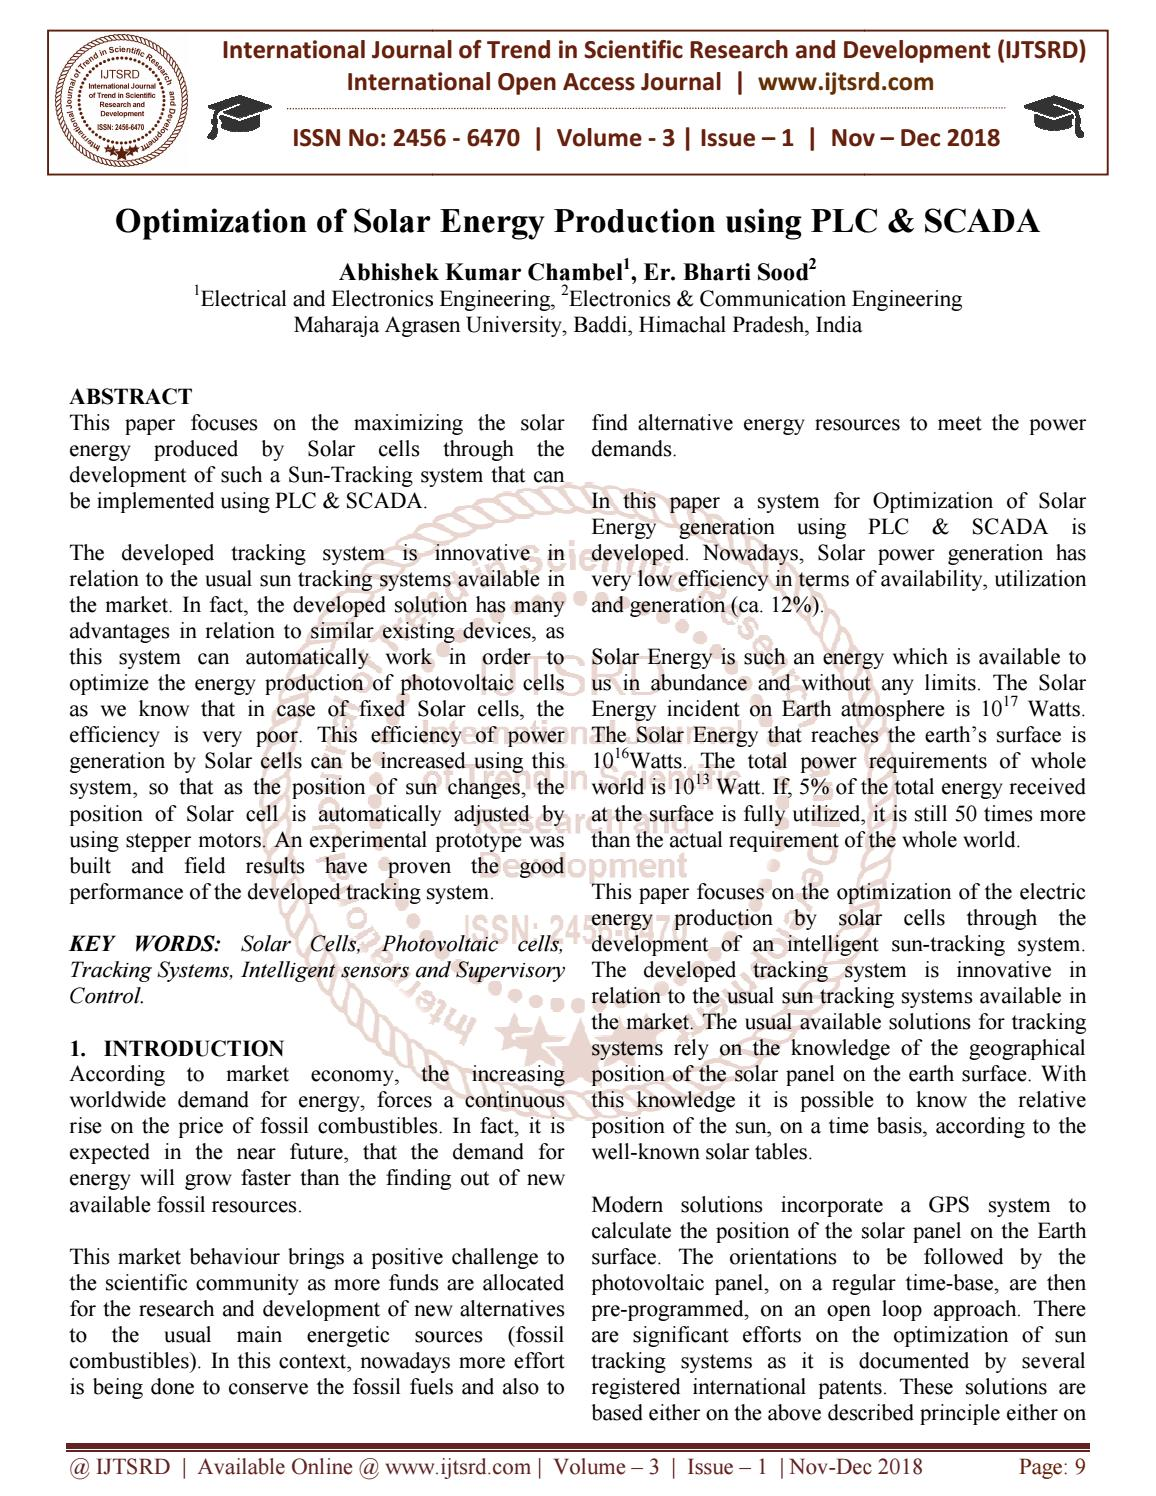 Optimization of Solar Energy Production using PLC and SCADA by